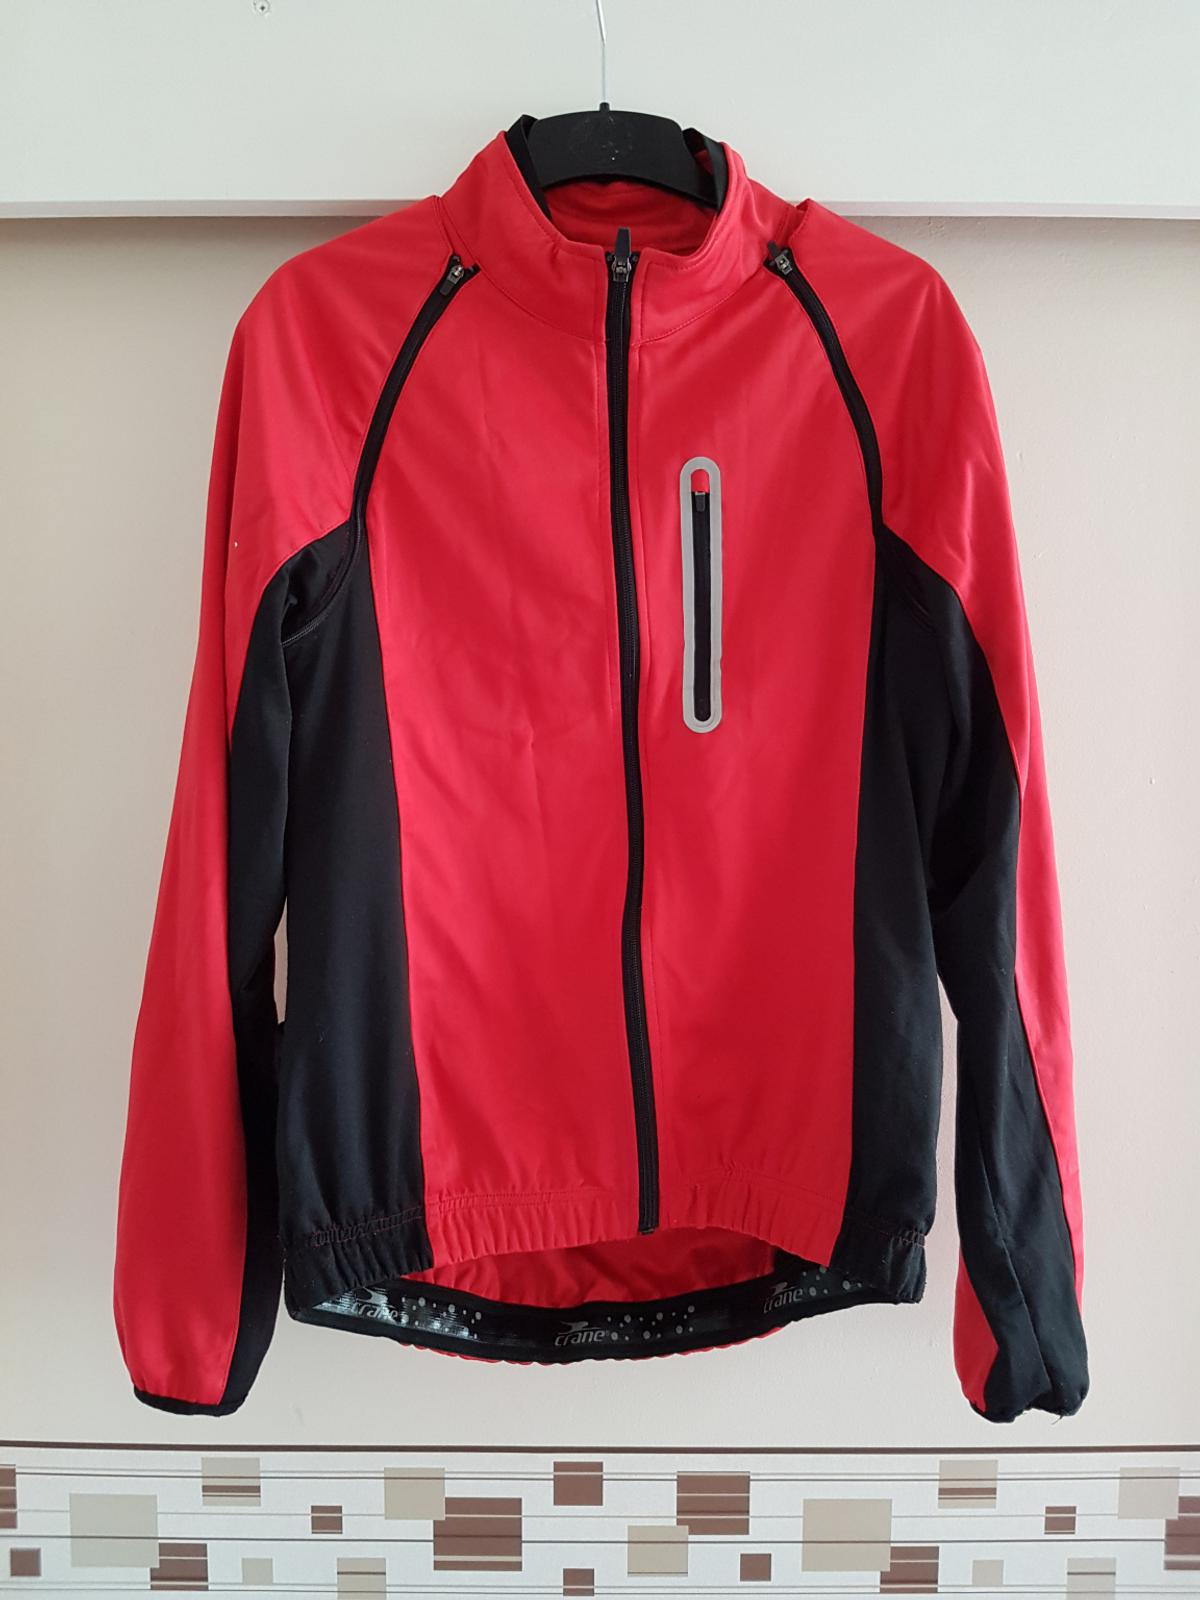 crane cycling jacket with rear pocket and sleeves comes off,excellent condition